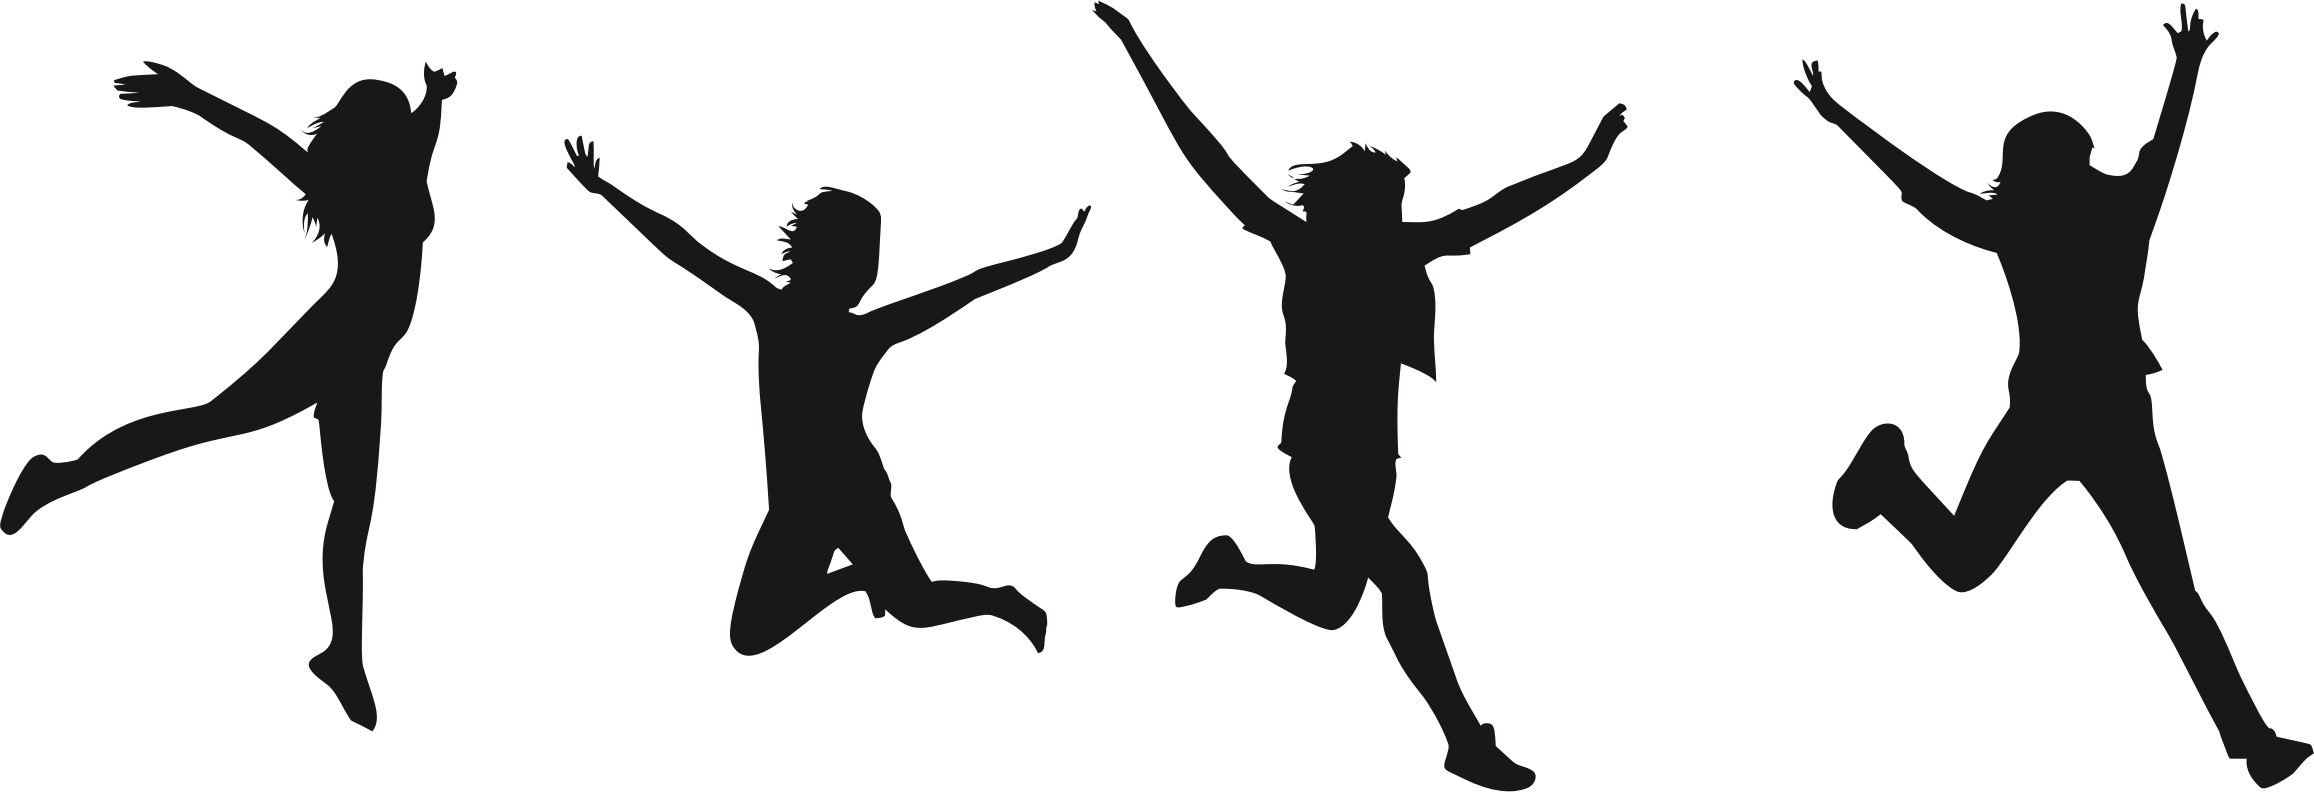 Cliff jump png. People jumping silhouette at